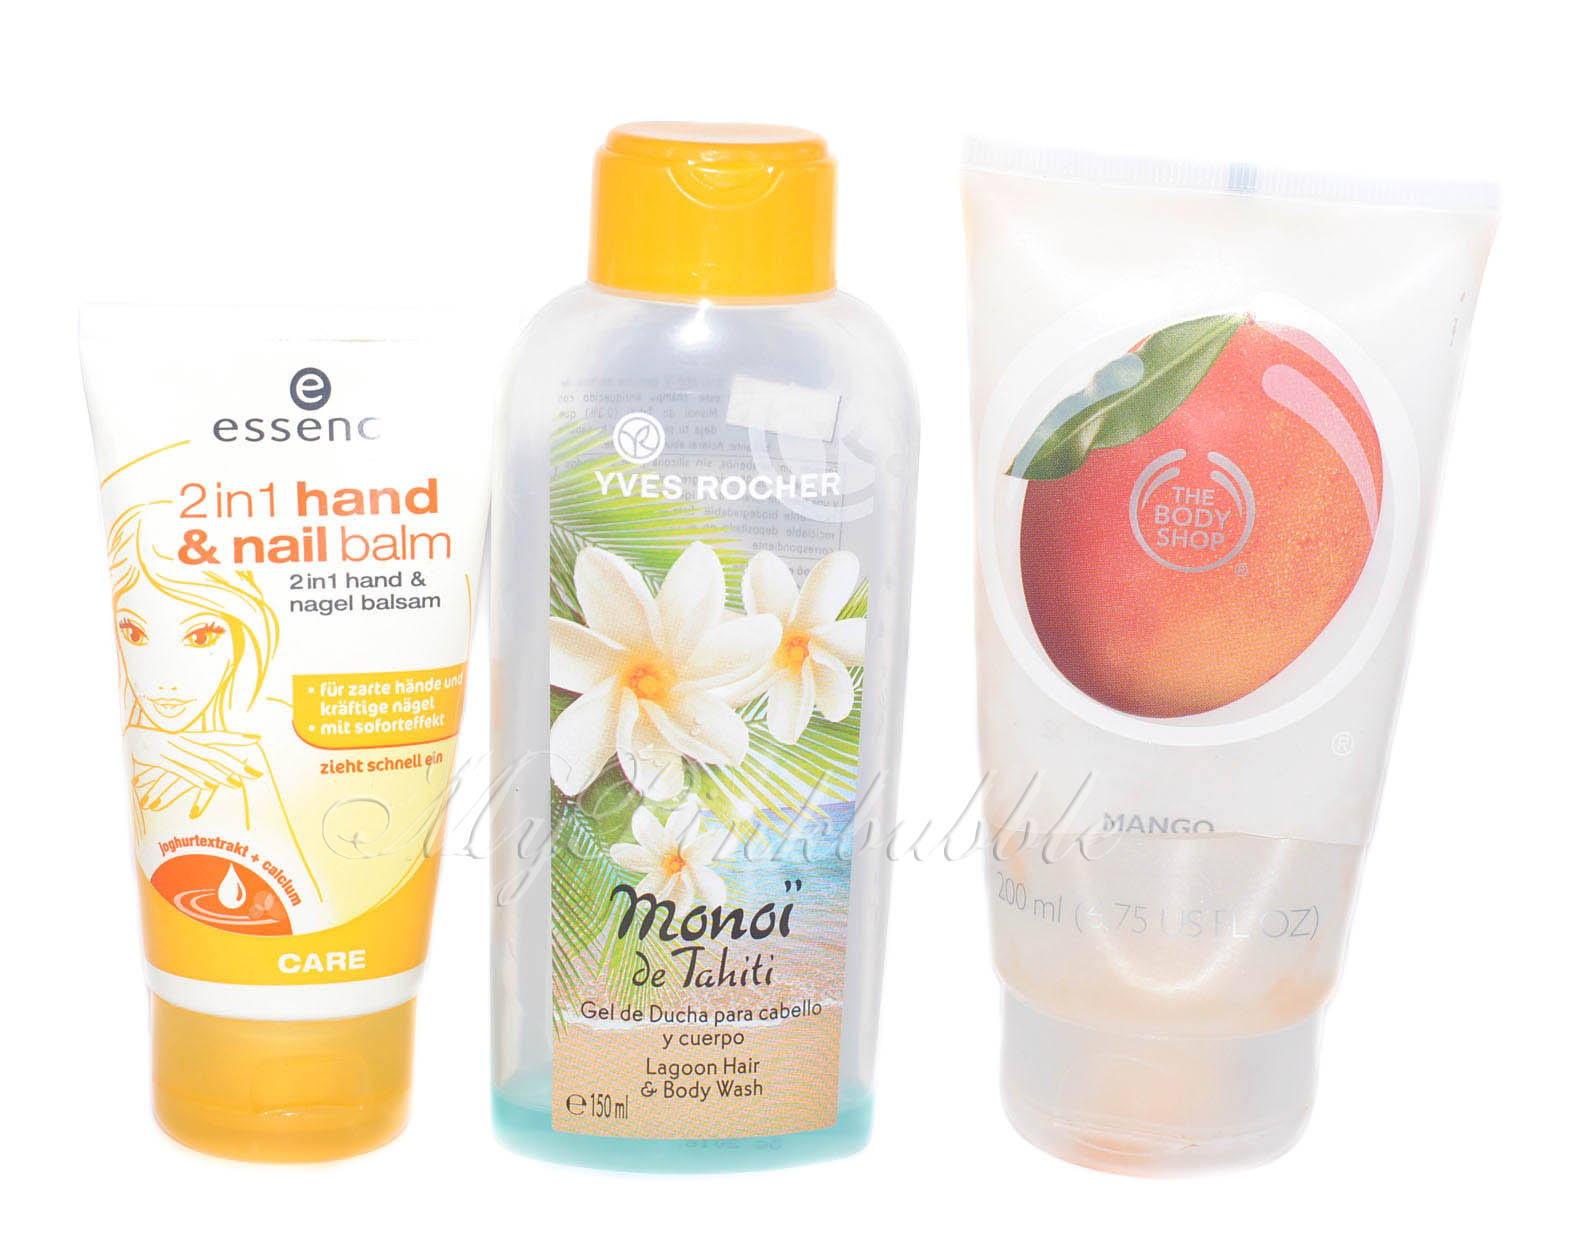 Essence crema manos Yves rocher monoi tahiti Body shop sorbet